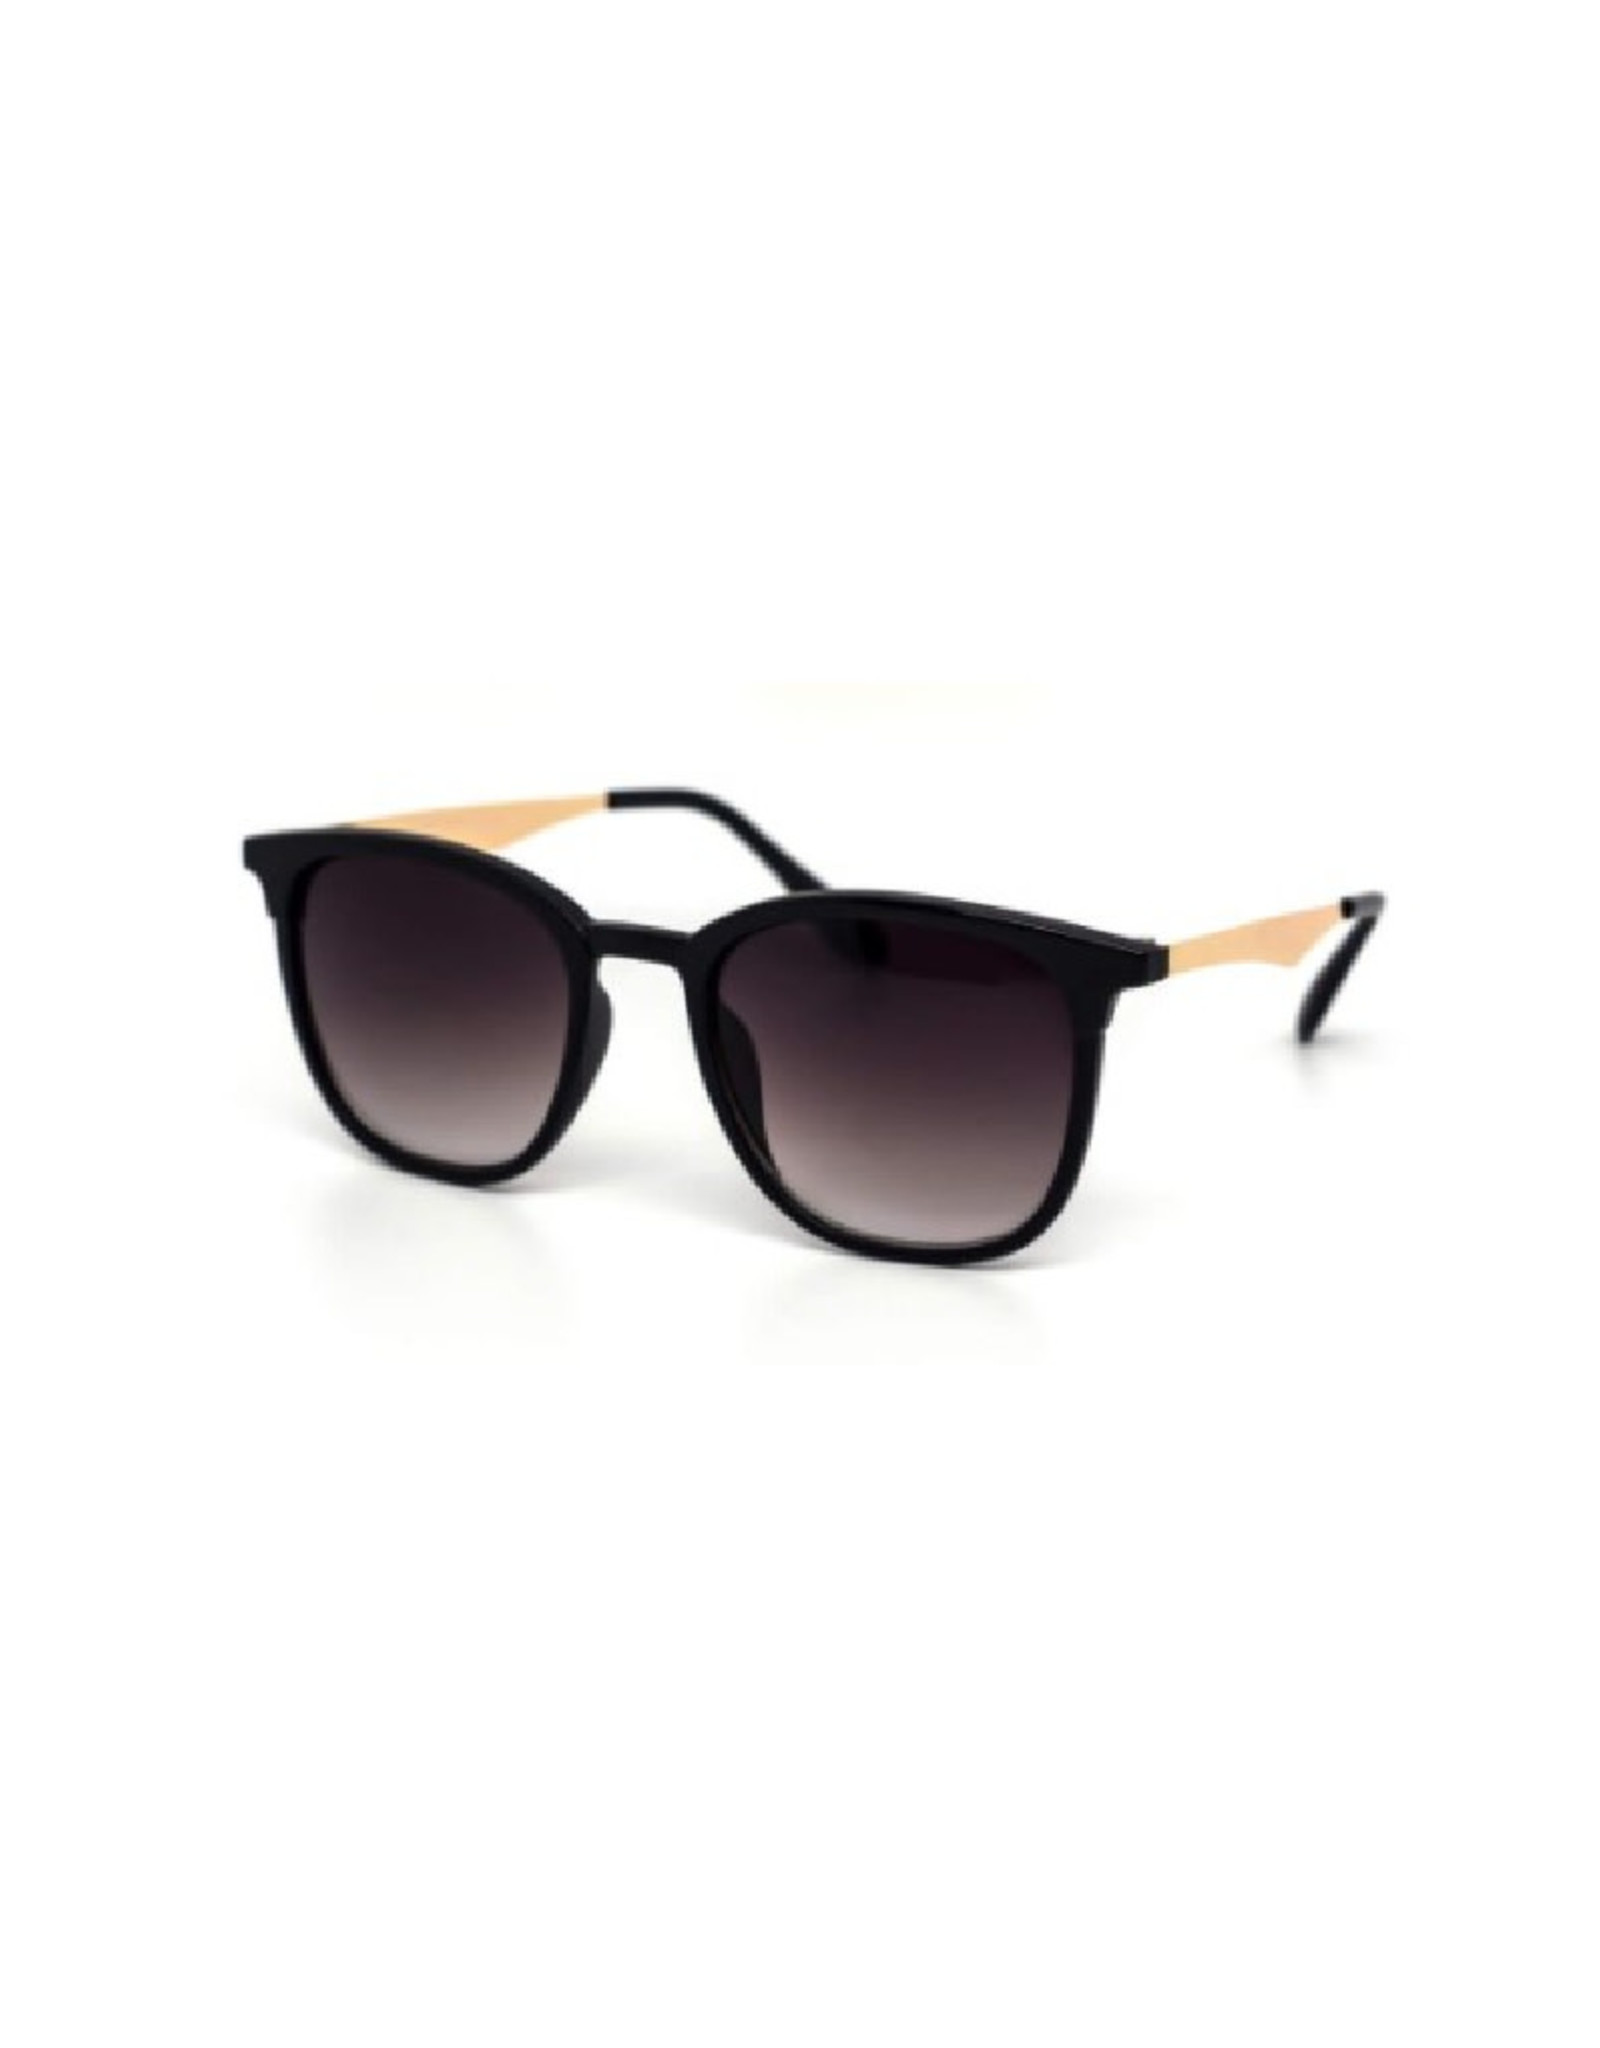 Sunglasses - Black Frames with Light Temples